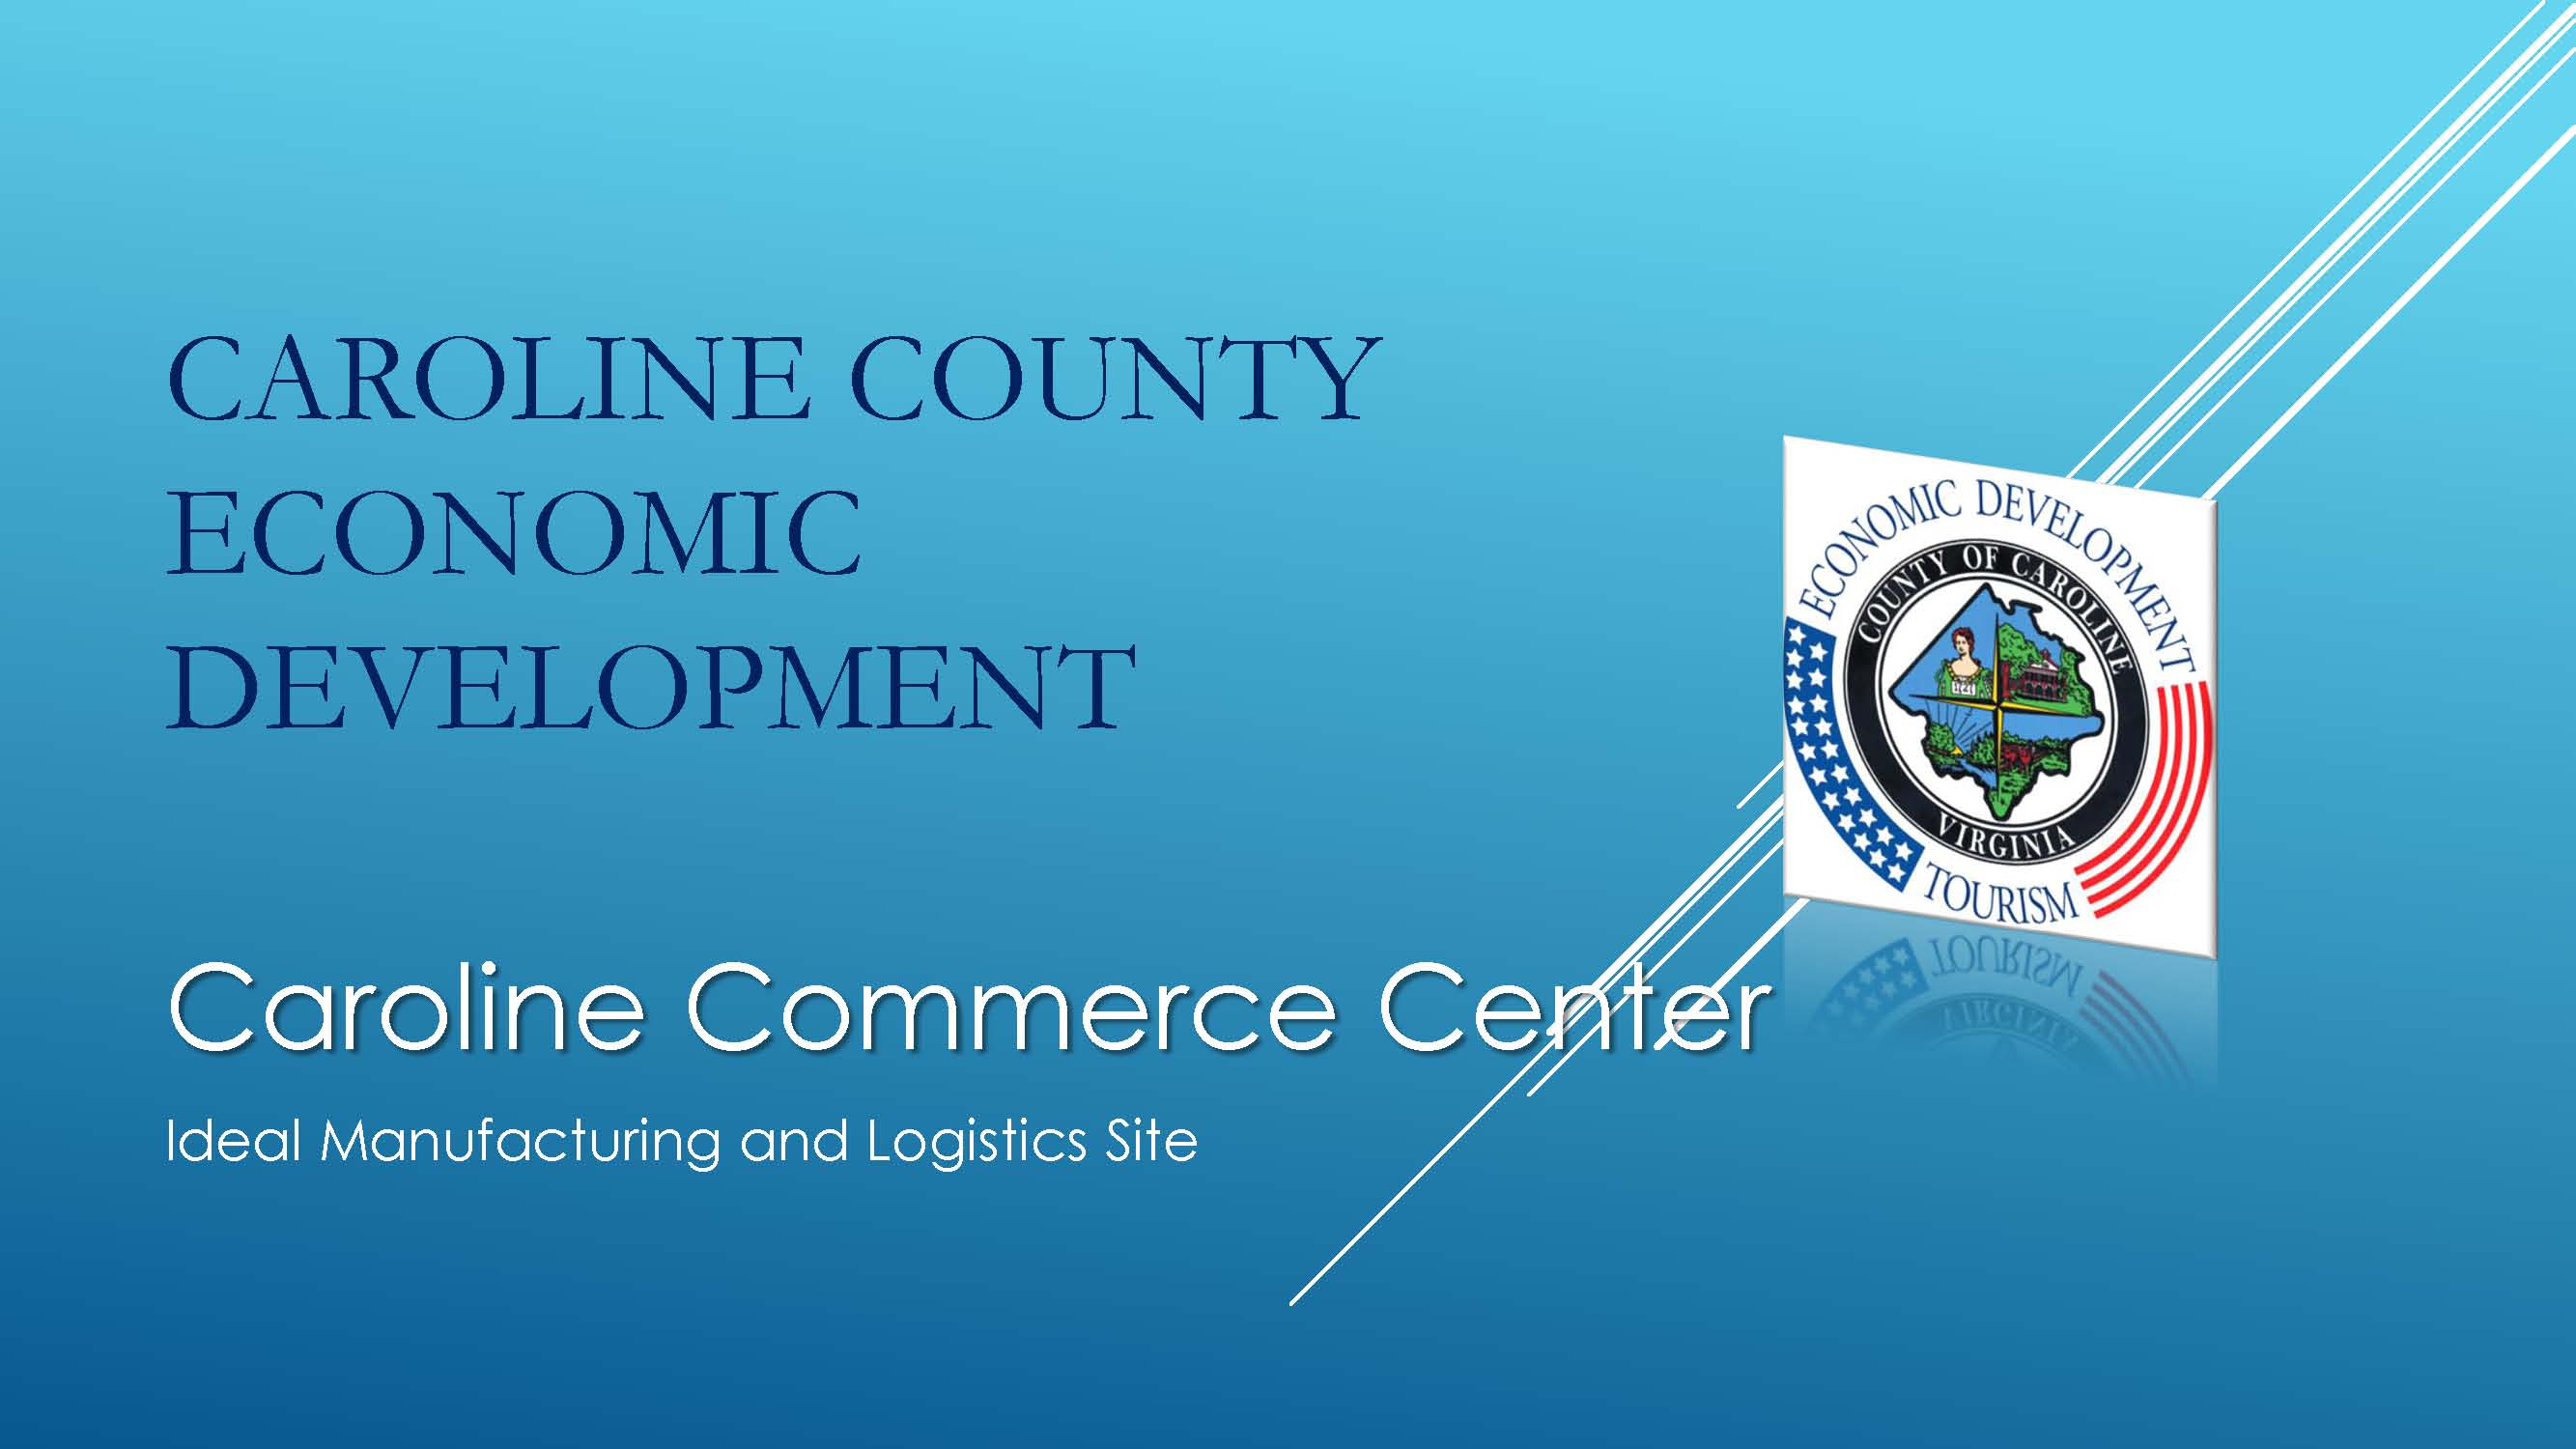 Caroline Commerce Center 3-18 Updated 8-23-19_Page_01